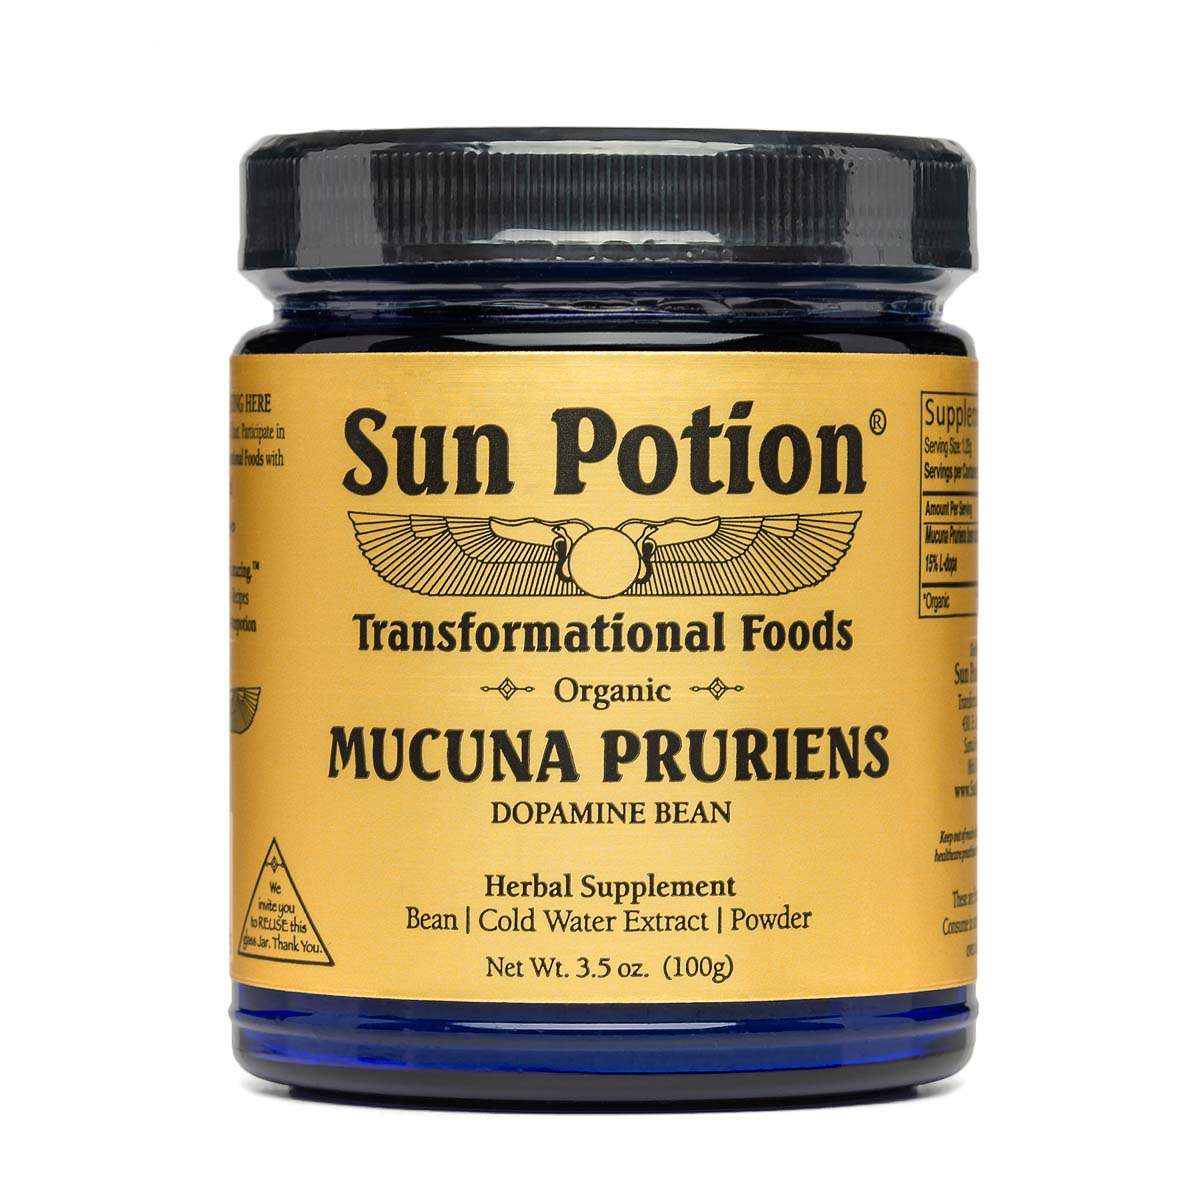 Mucuna Pruriens powder (100g) - Sun Potion